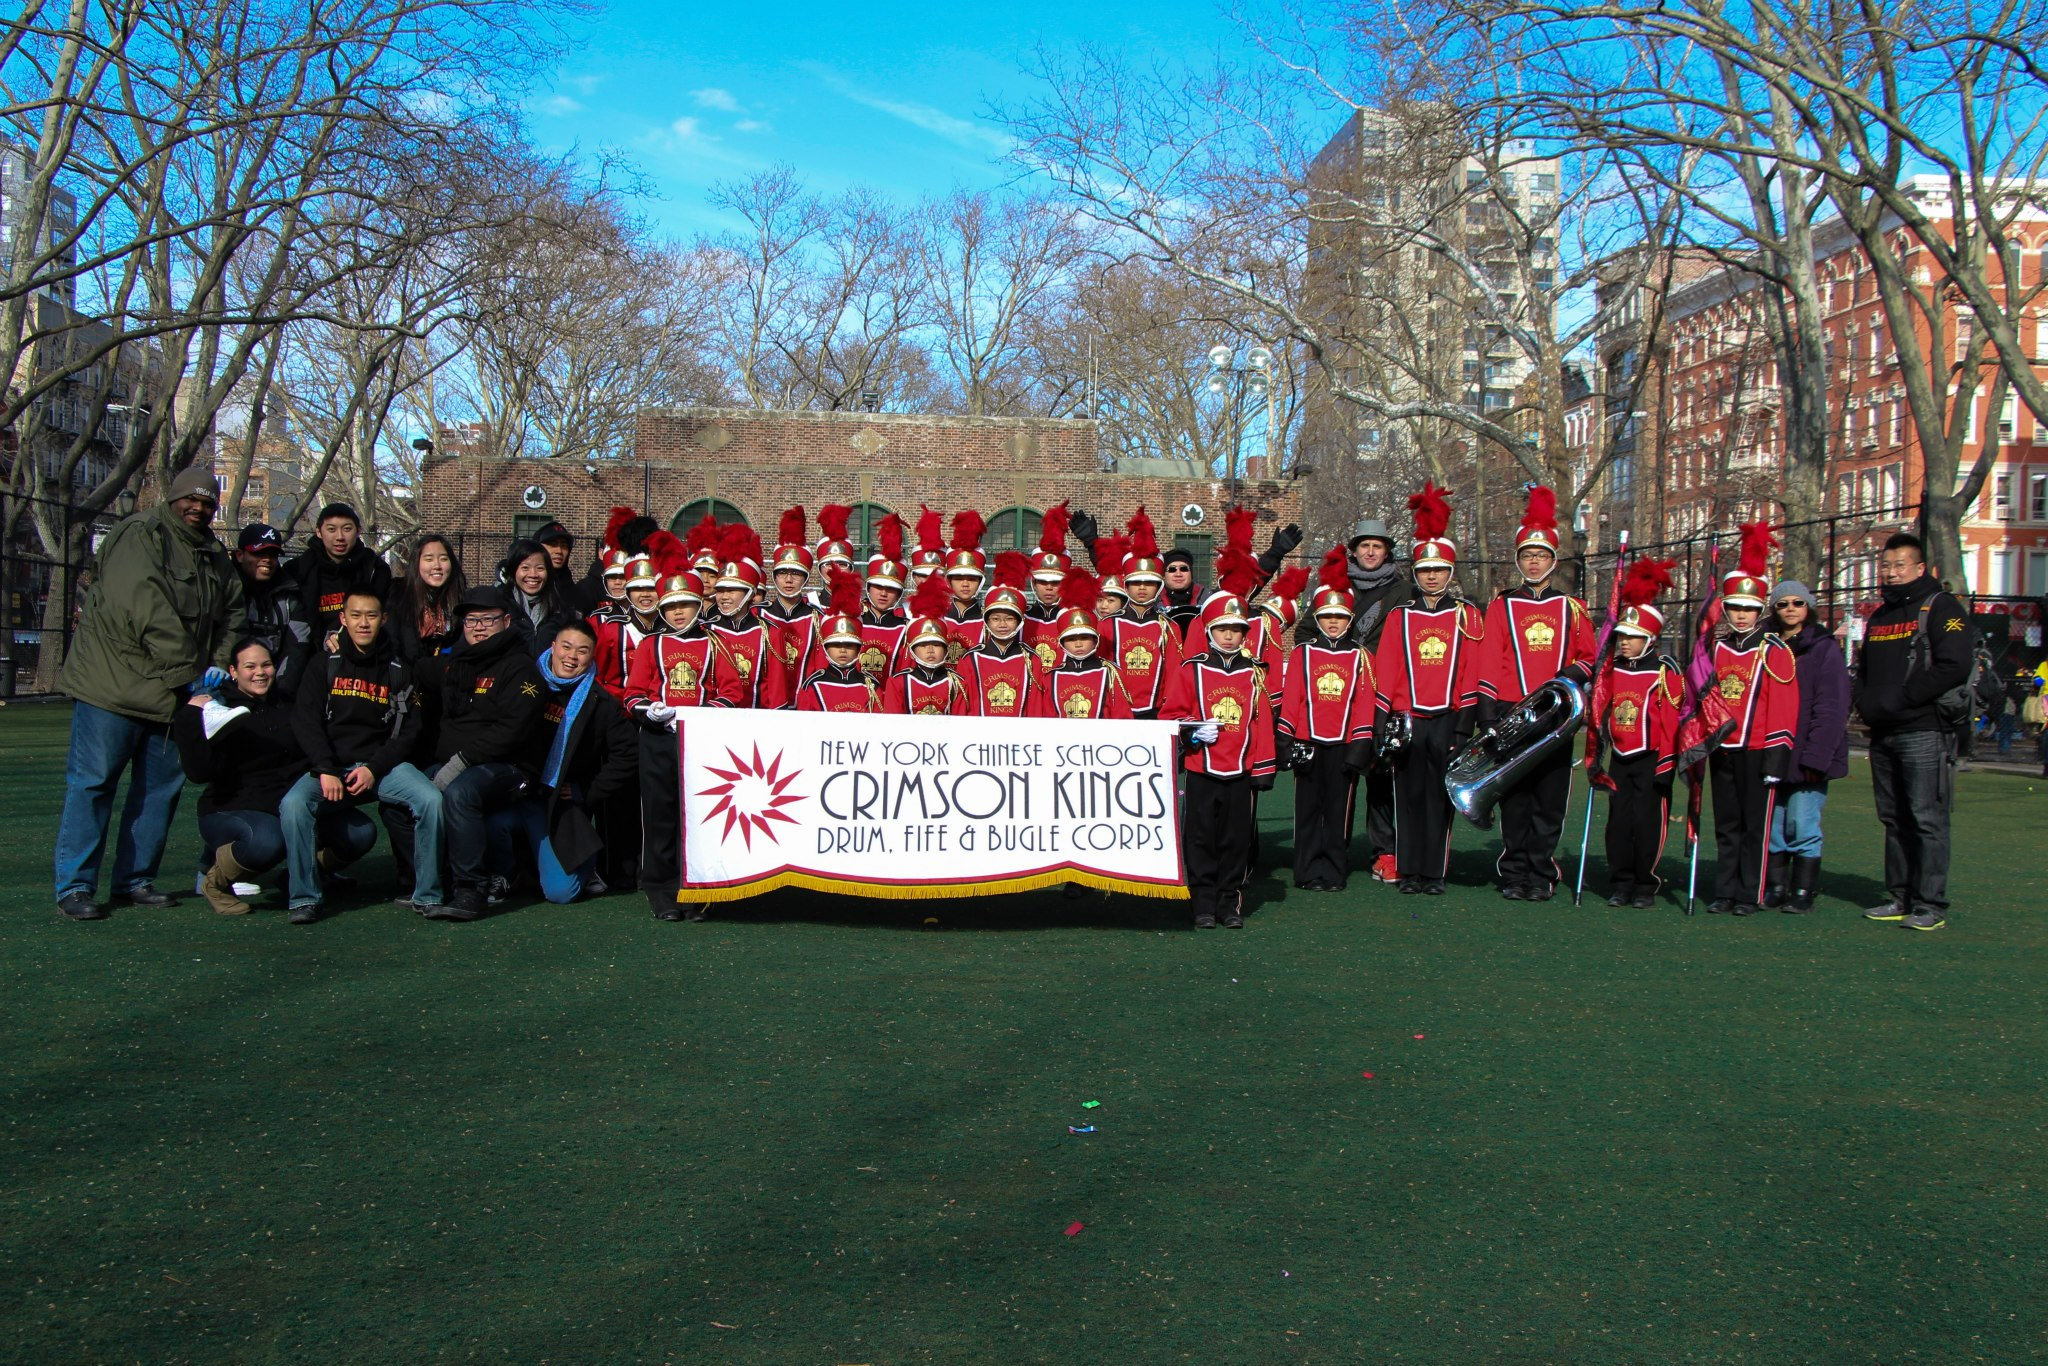 After the 2012 Chinese New Year Parade at Sara D. Roosevelt Park